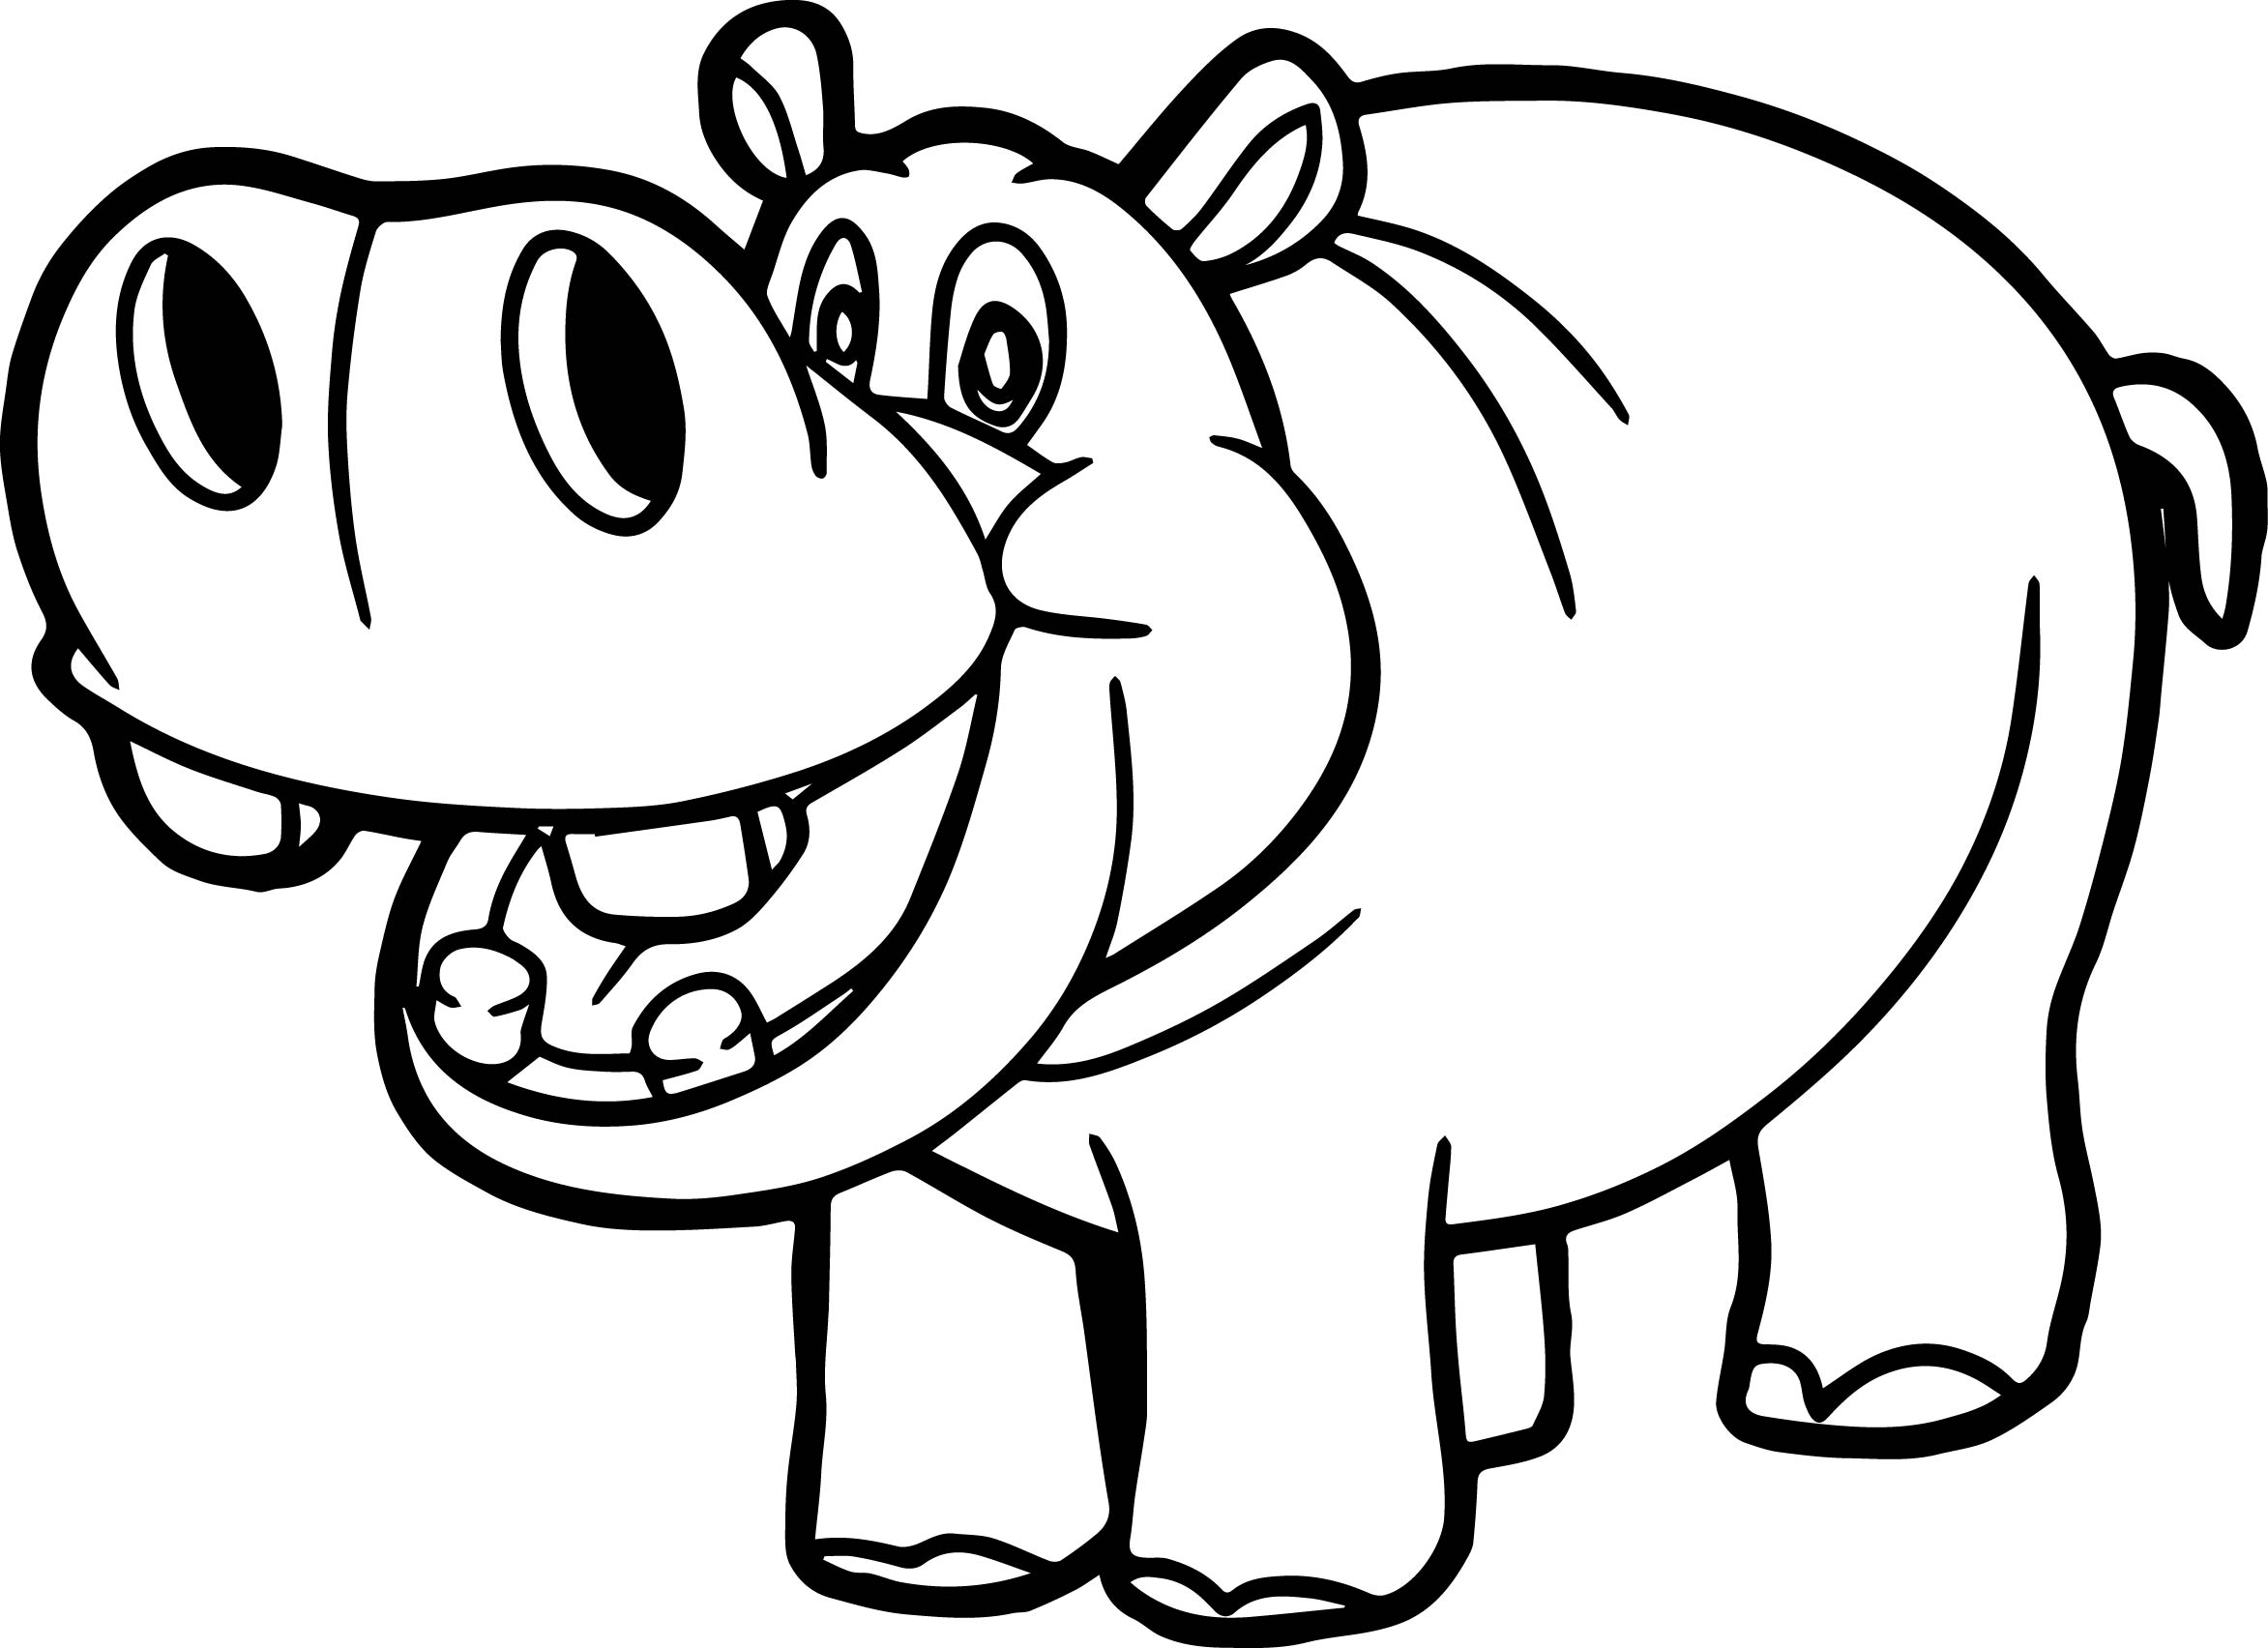 hippopotamus coloring pages printable hippo coloring pages for kids cool2bkids pages hippopotamus coloring